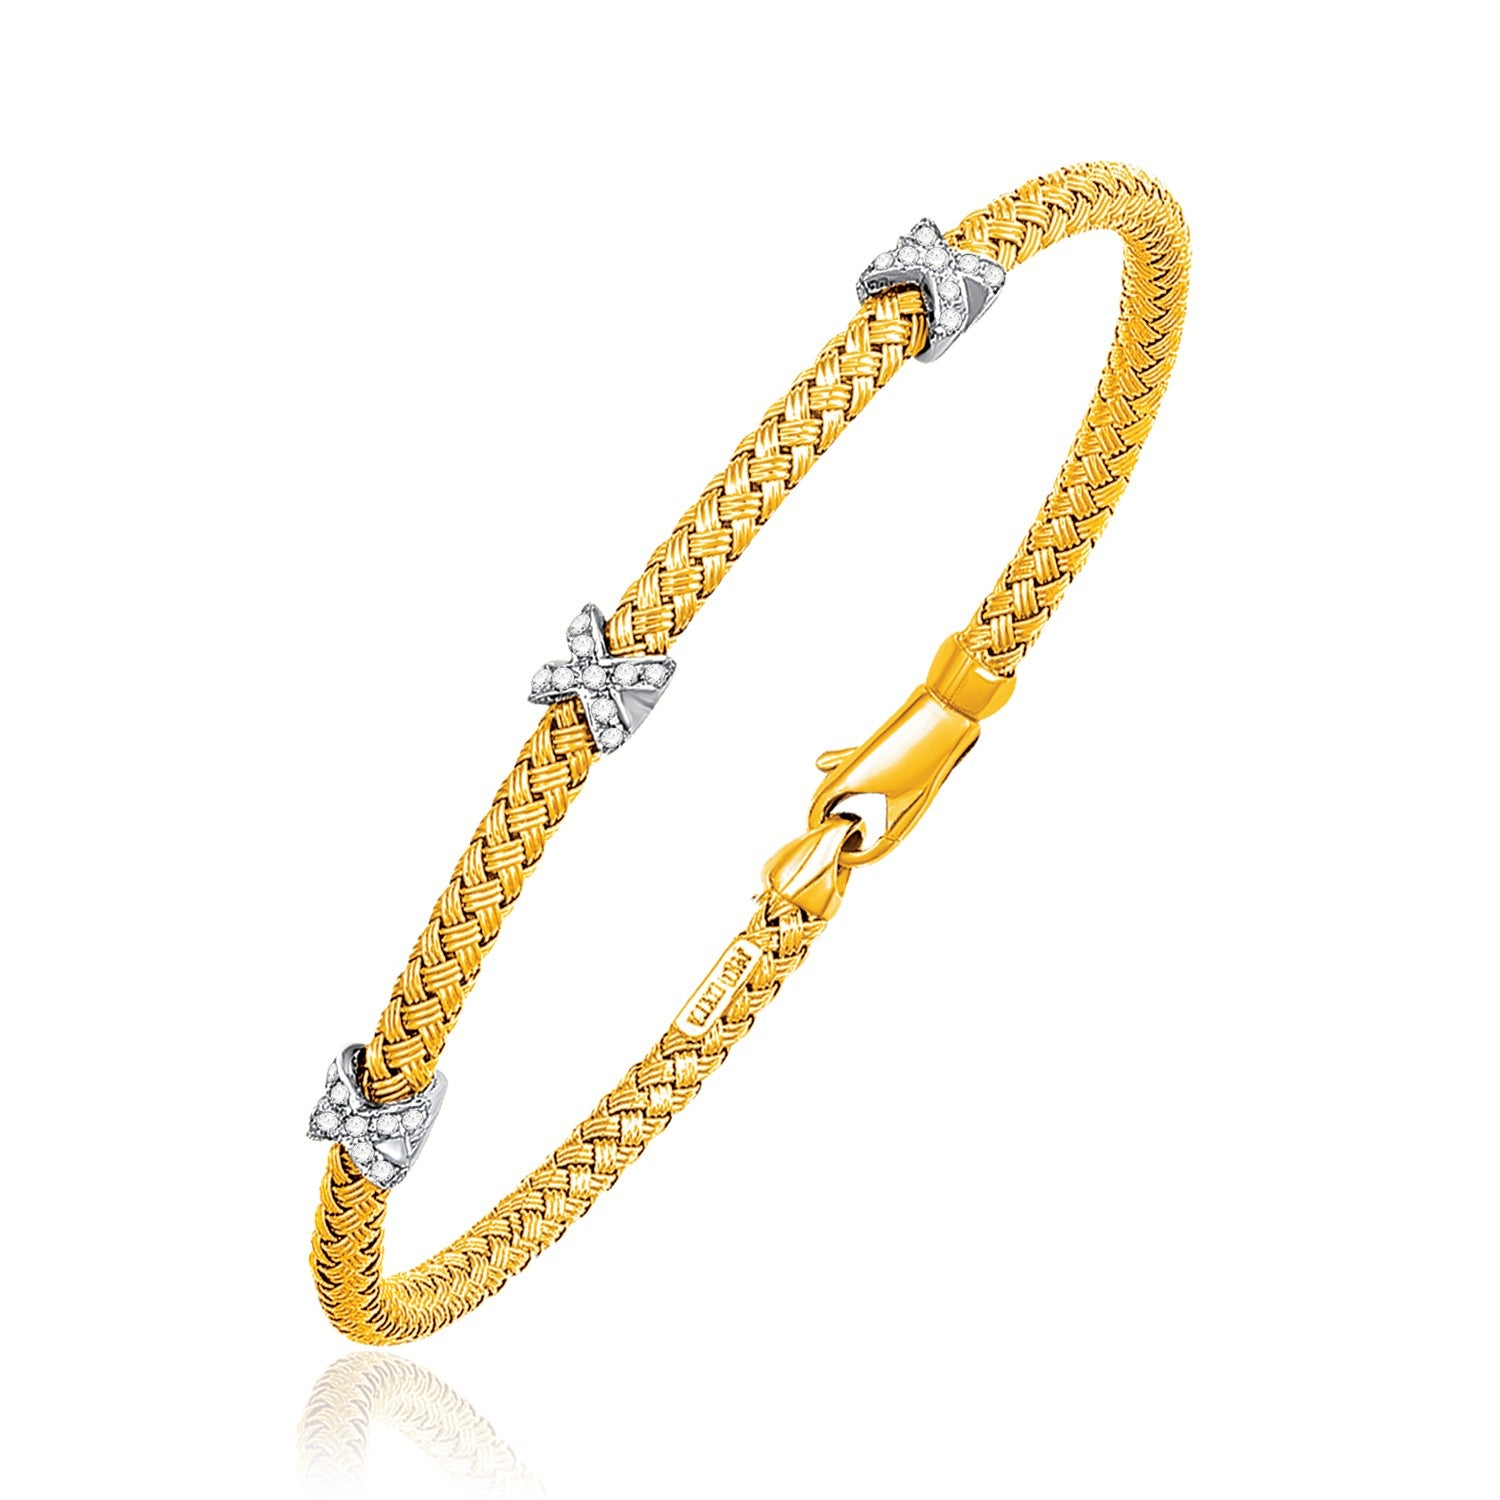 Basket Weave Bangle with Cross Diamond Accents in 14K Yellow Gold (4.0mm)